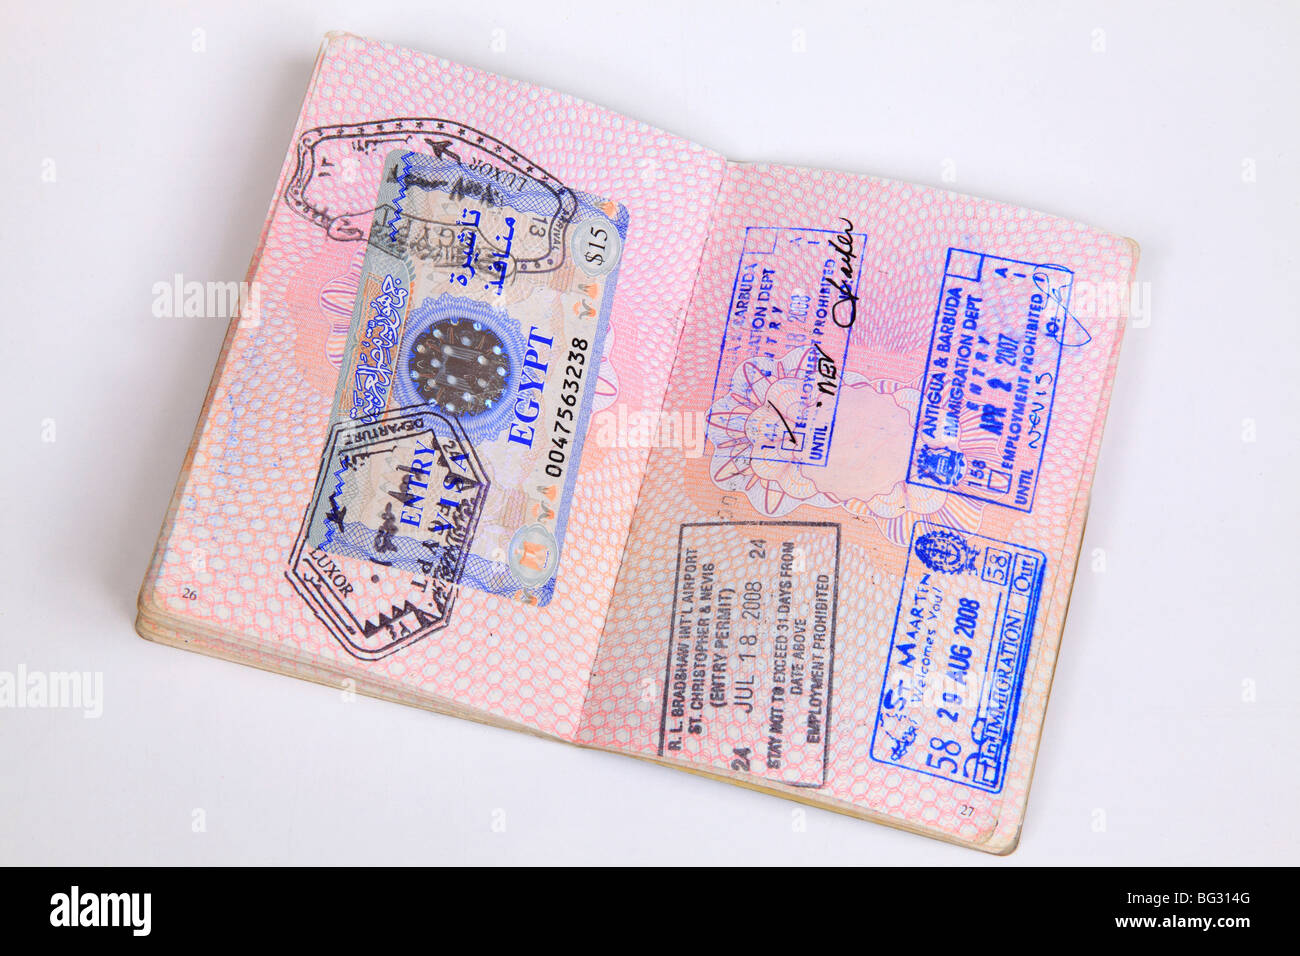 UK Passport pages with destination stamps from different ...